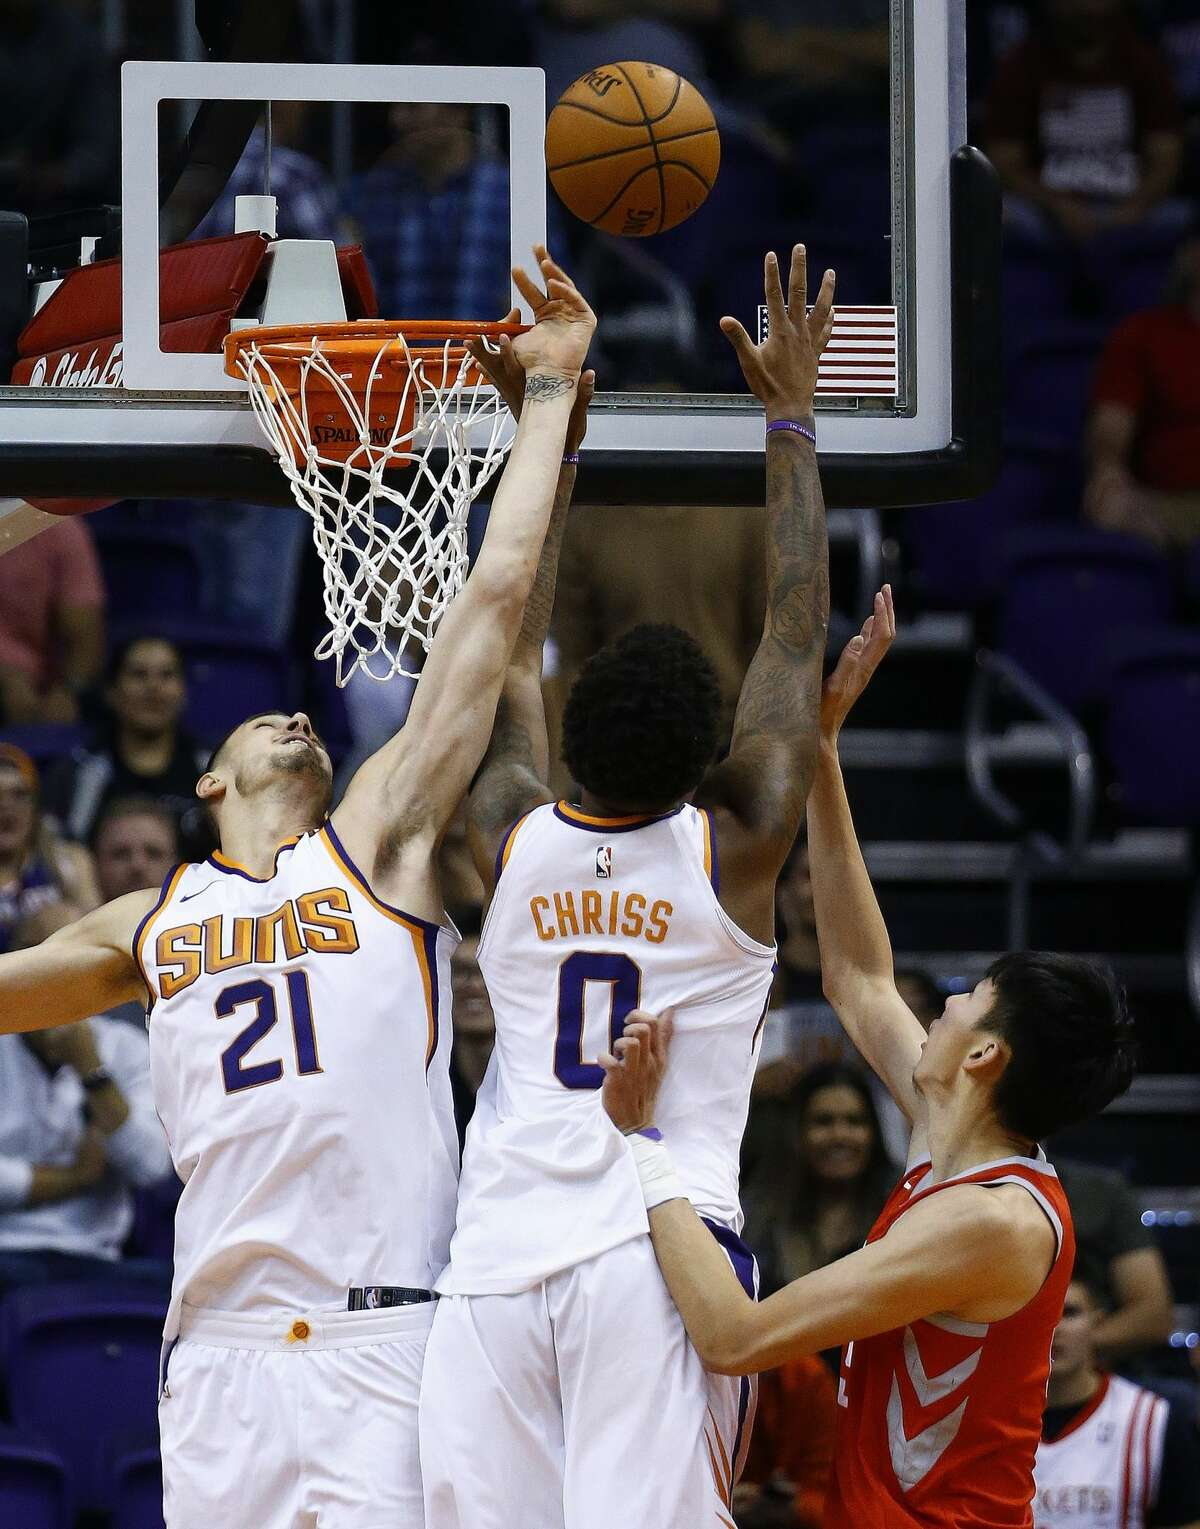 Phoenix Suns center Alex Len (21) and forward Marquese Chriss (0) block the shot of Houston Rockets forward Zhou Qi, right, of China, during the second half of an NBA basketball game Thursday, Nov. 16, 2017, in Phoenix. The Rockets defeated the Suns 142-116. (AP Photo/Ross D. Franklin)